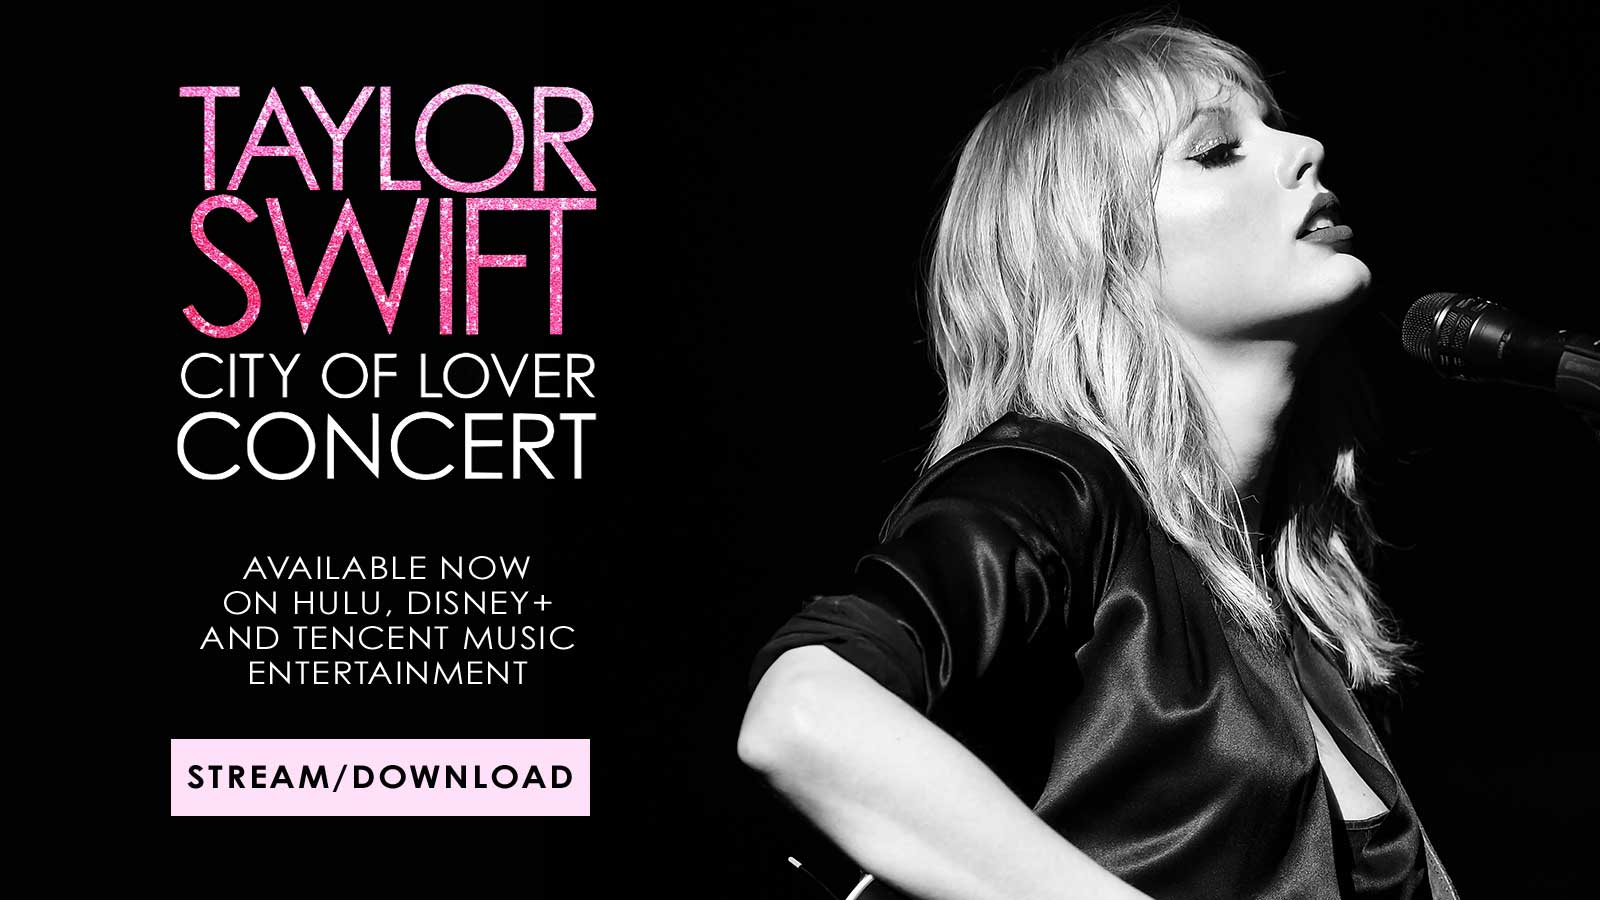 Taylor Swift City Of Lover Concert Availalbe now on Hulu, Disney+, and tencent music entertainment